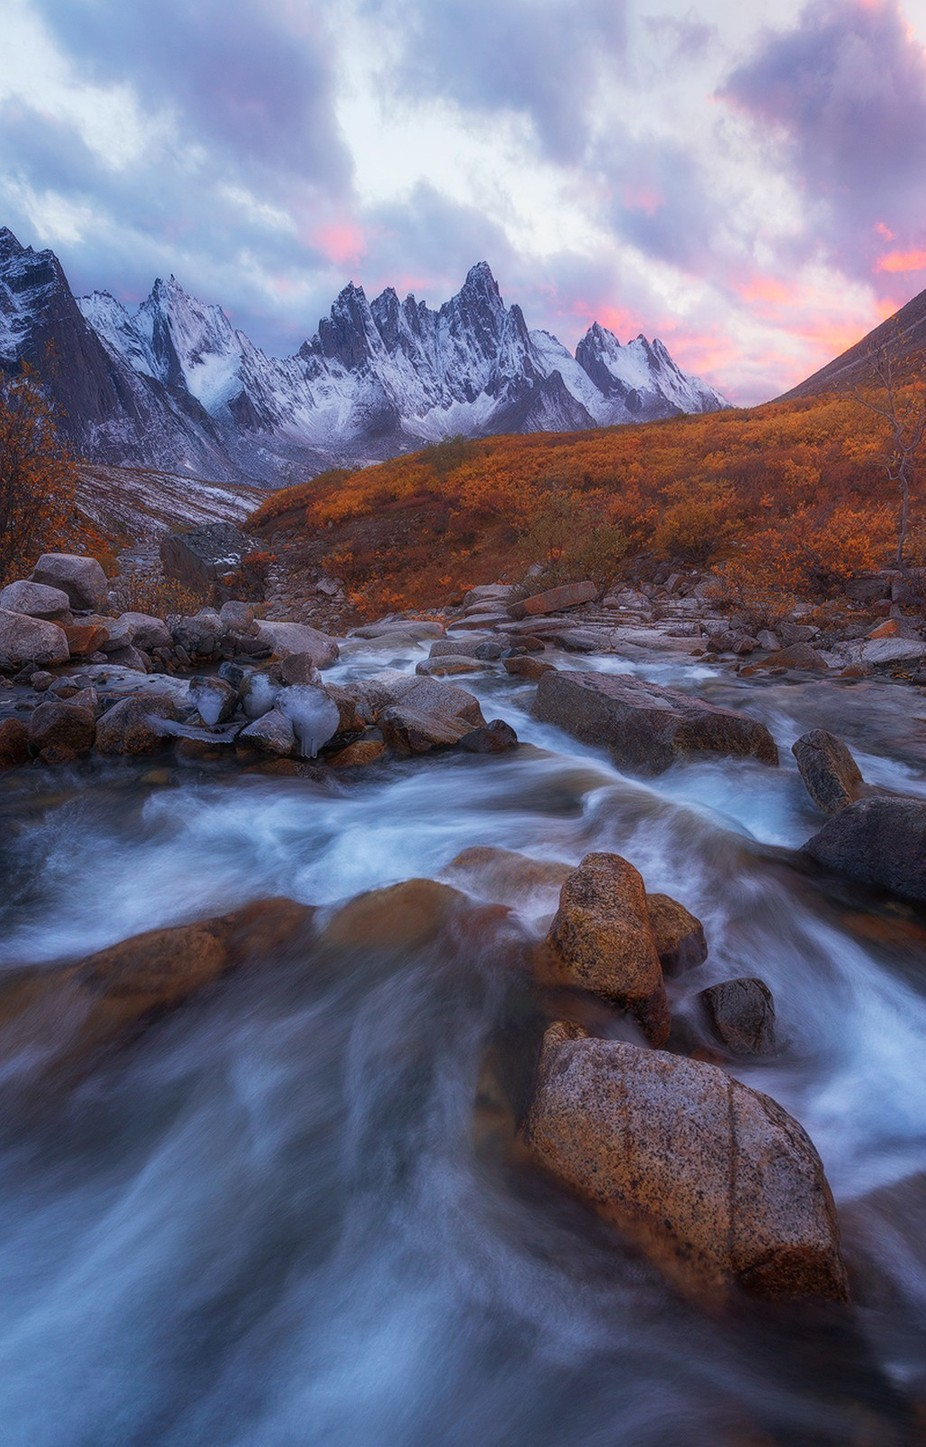 Patagonia of North America by terenceleezy - The First Light Photo Contest